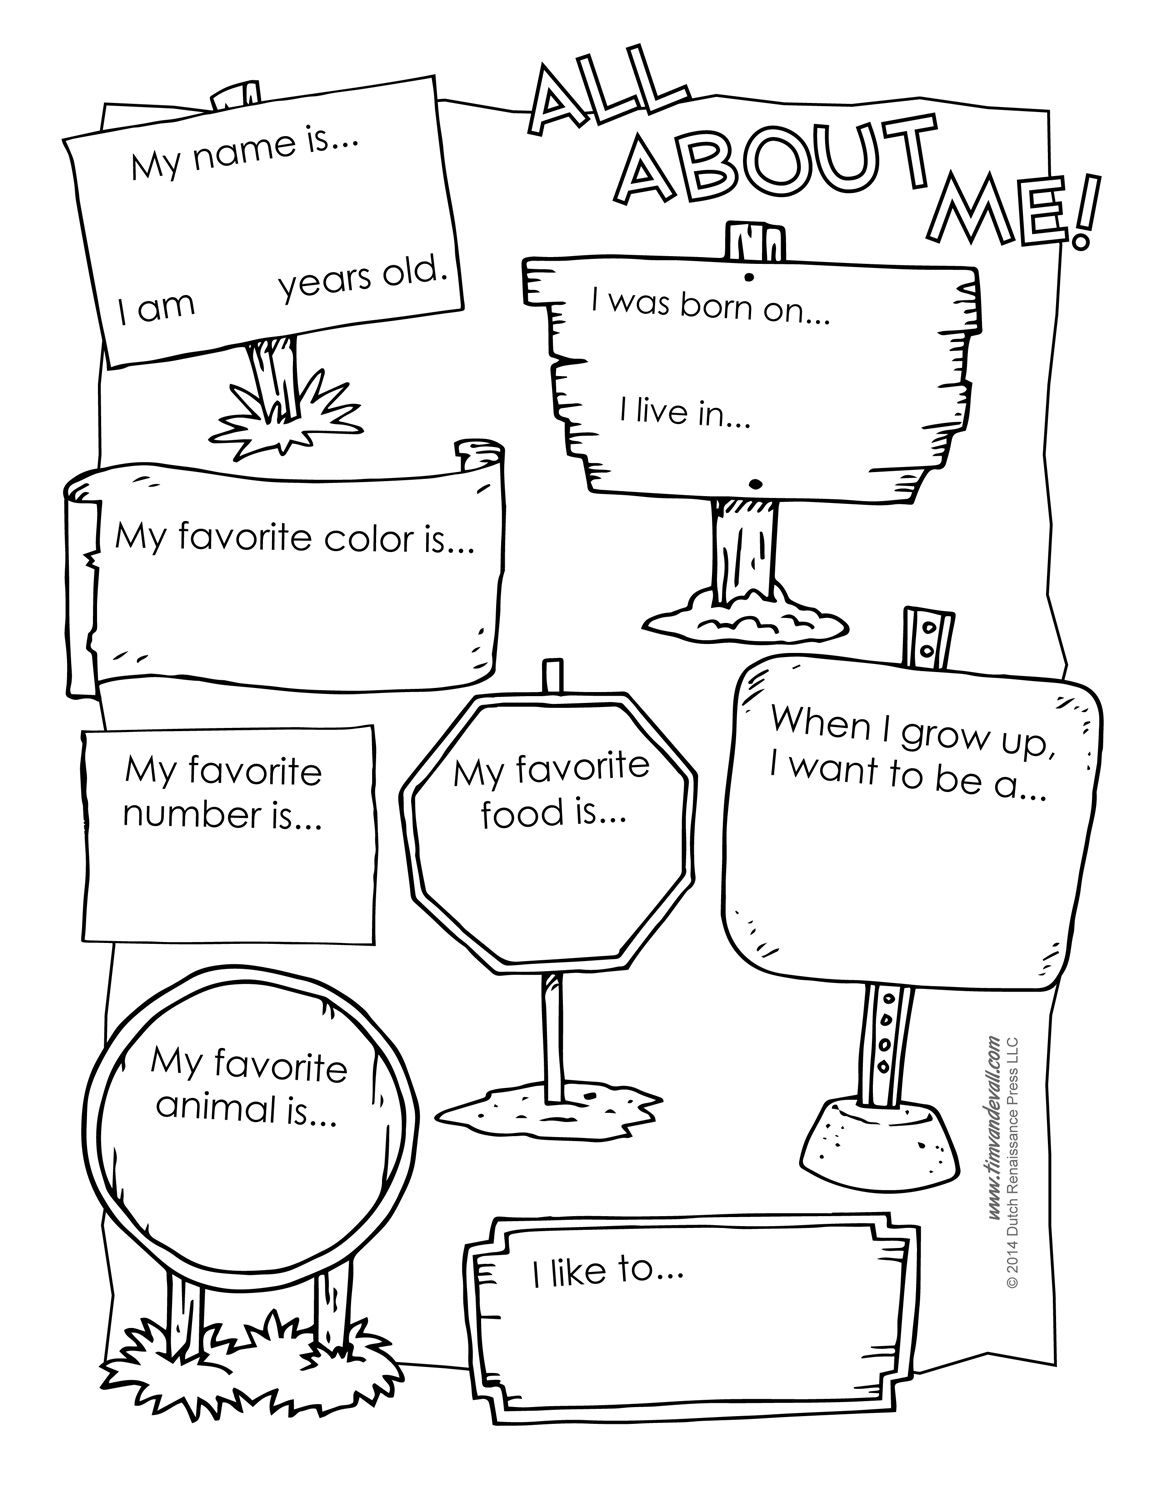 photo regarding All About Me Free Printable Worksheet called all relating to me preschool template 6 Ideal Pics of All Around